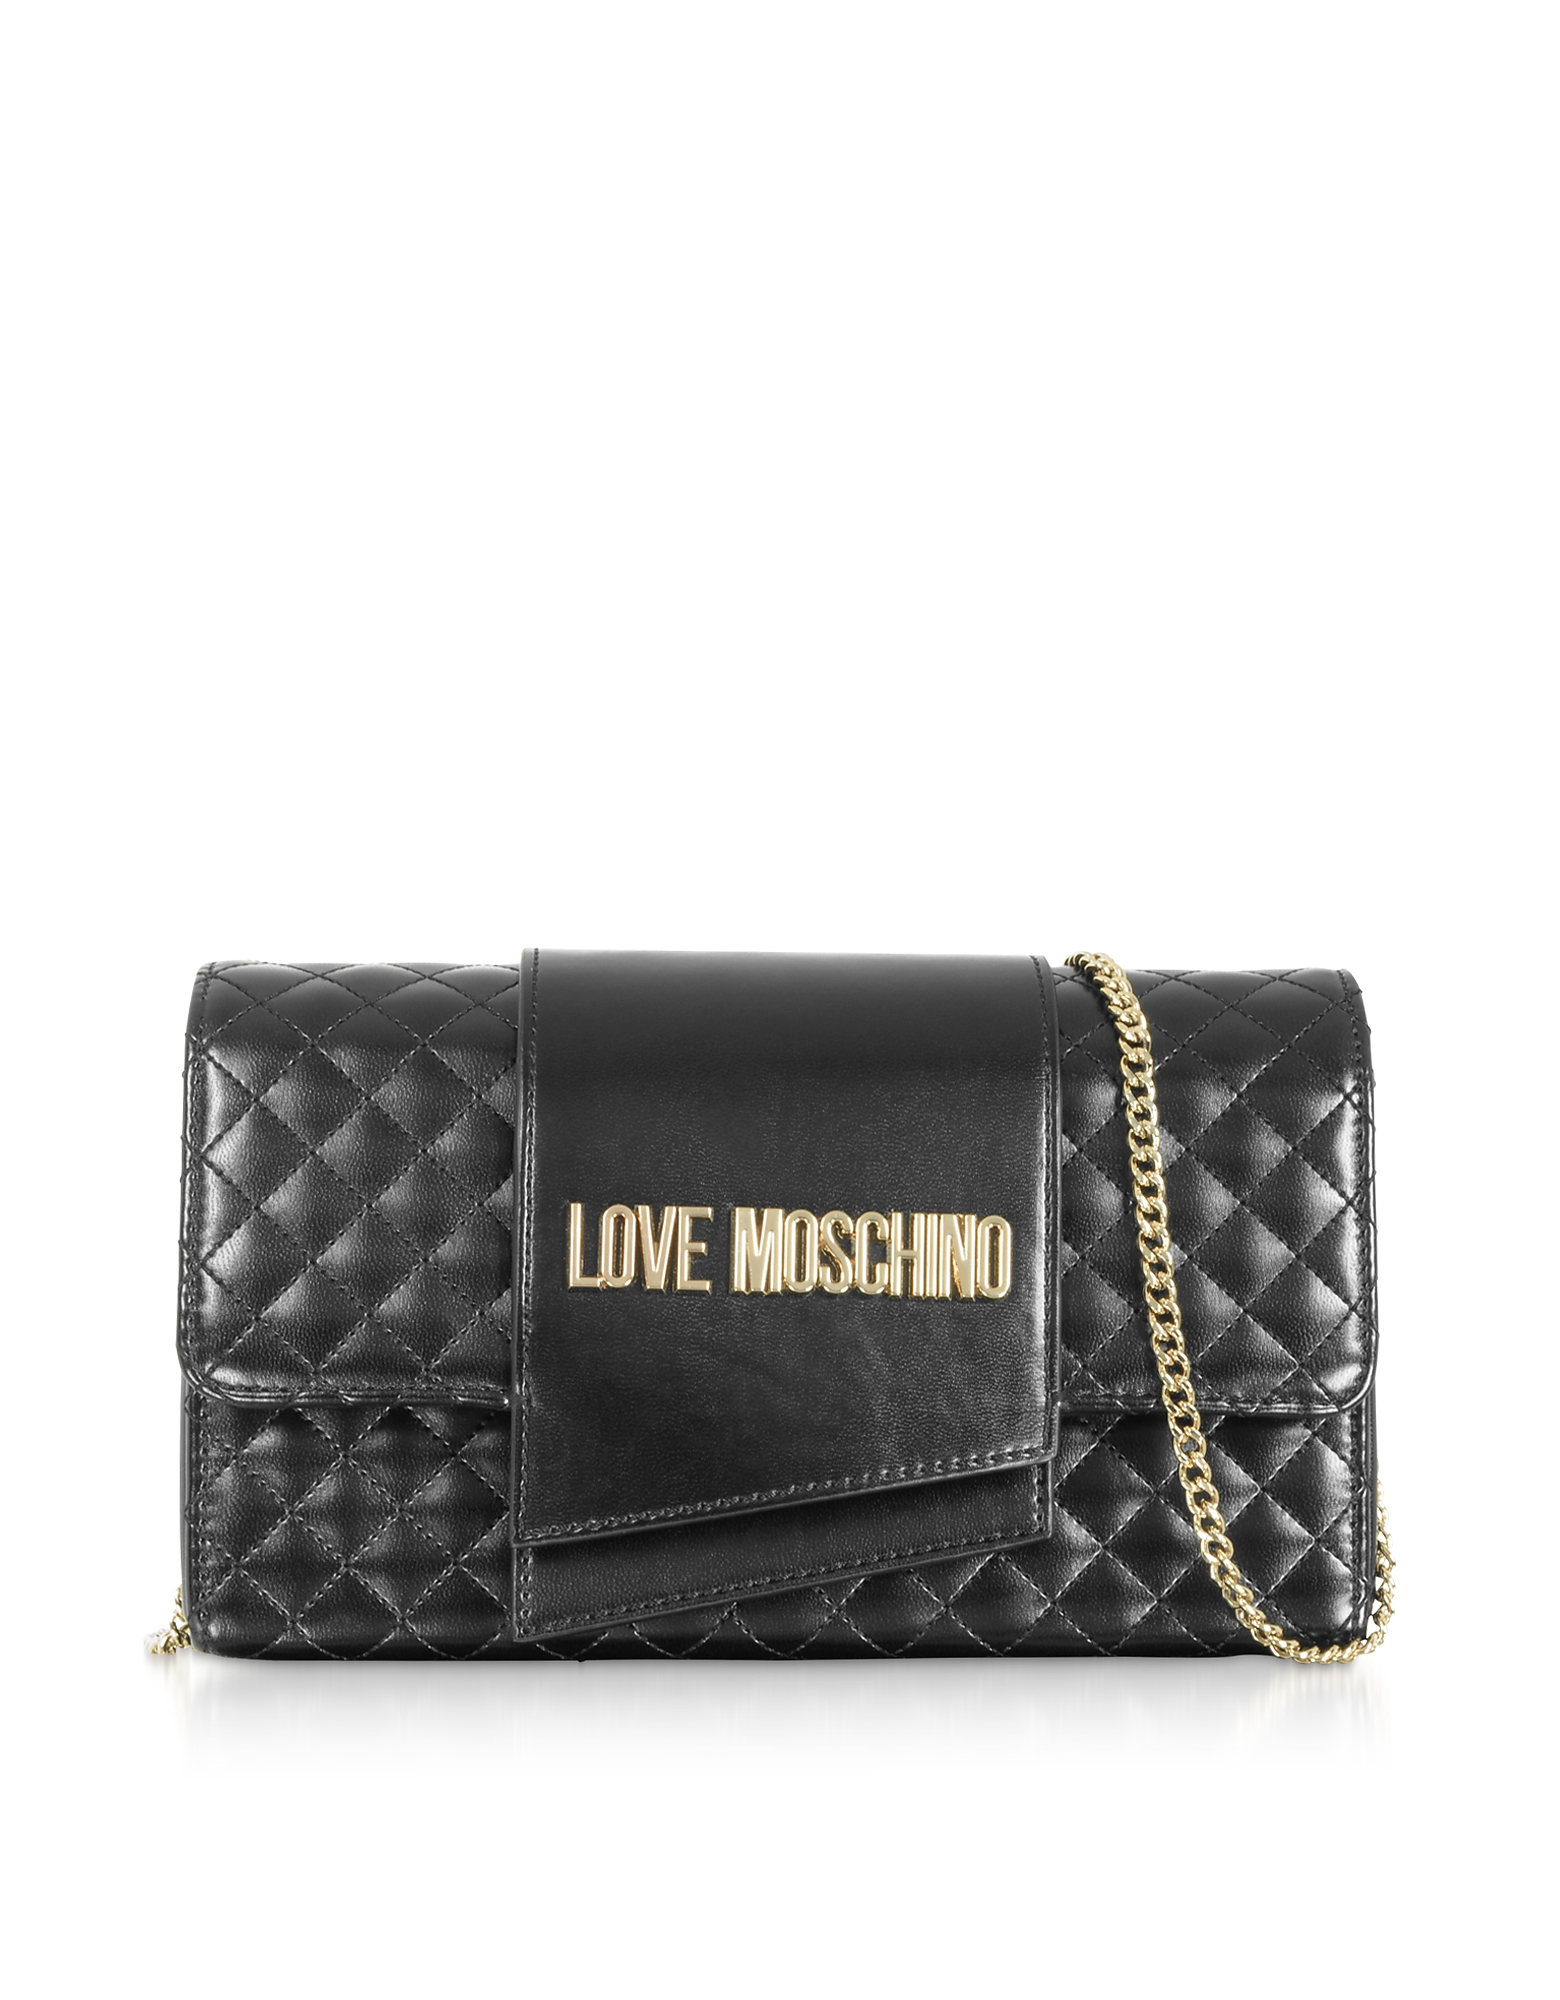 Love Moschino Designer Handbags, Quilted Eco-leather Clutch Bag